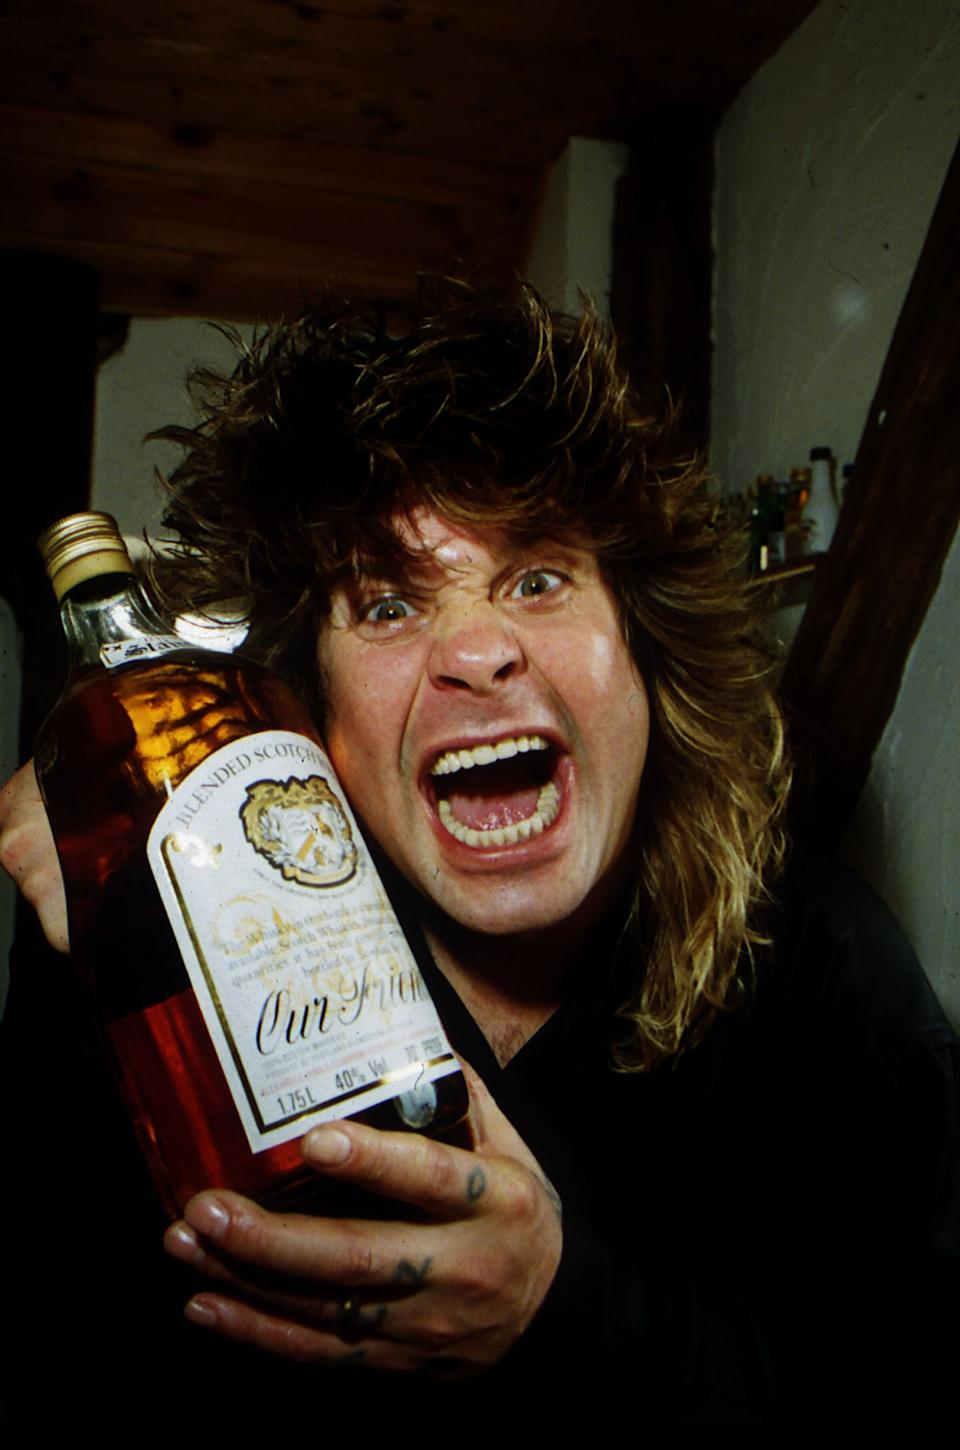 Ozzy Osbourne holding a large bottle of whisky at his home, May 1989. (Photo by People/Mirrorpix/Getty Images)